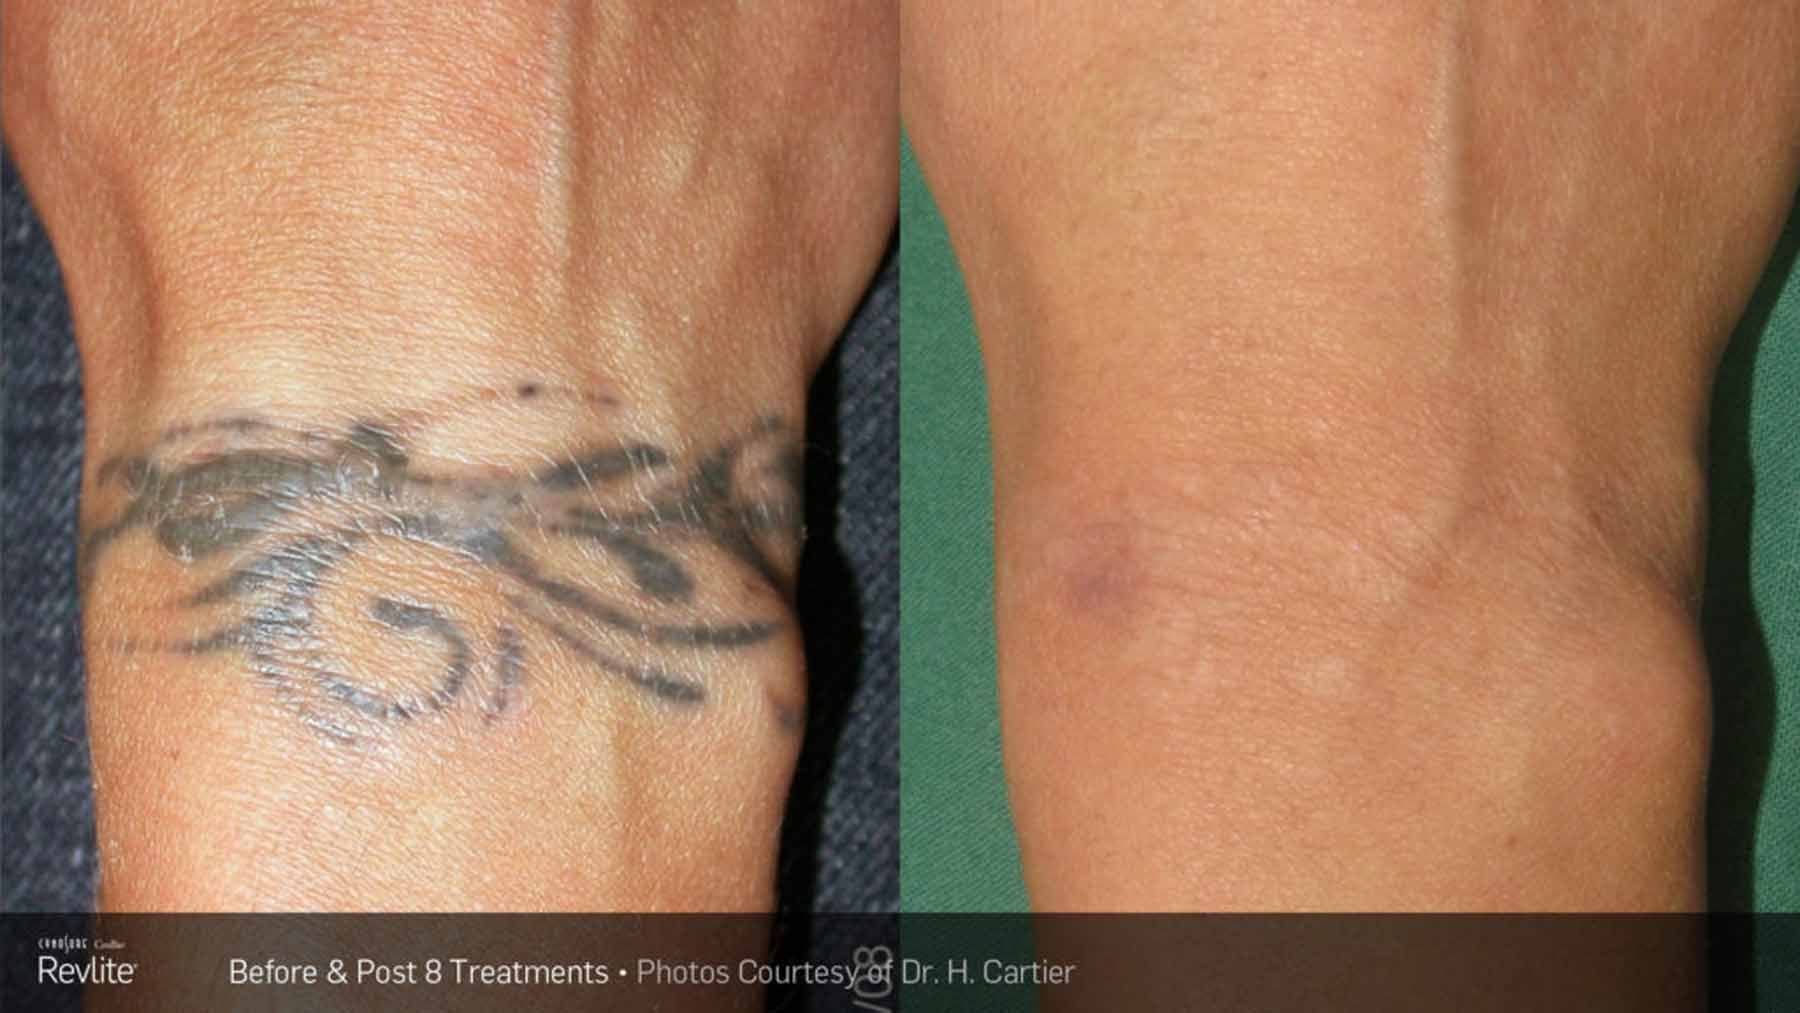 Tattoo being removed with RevLite